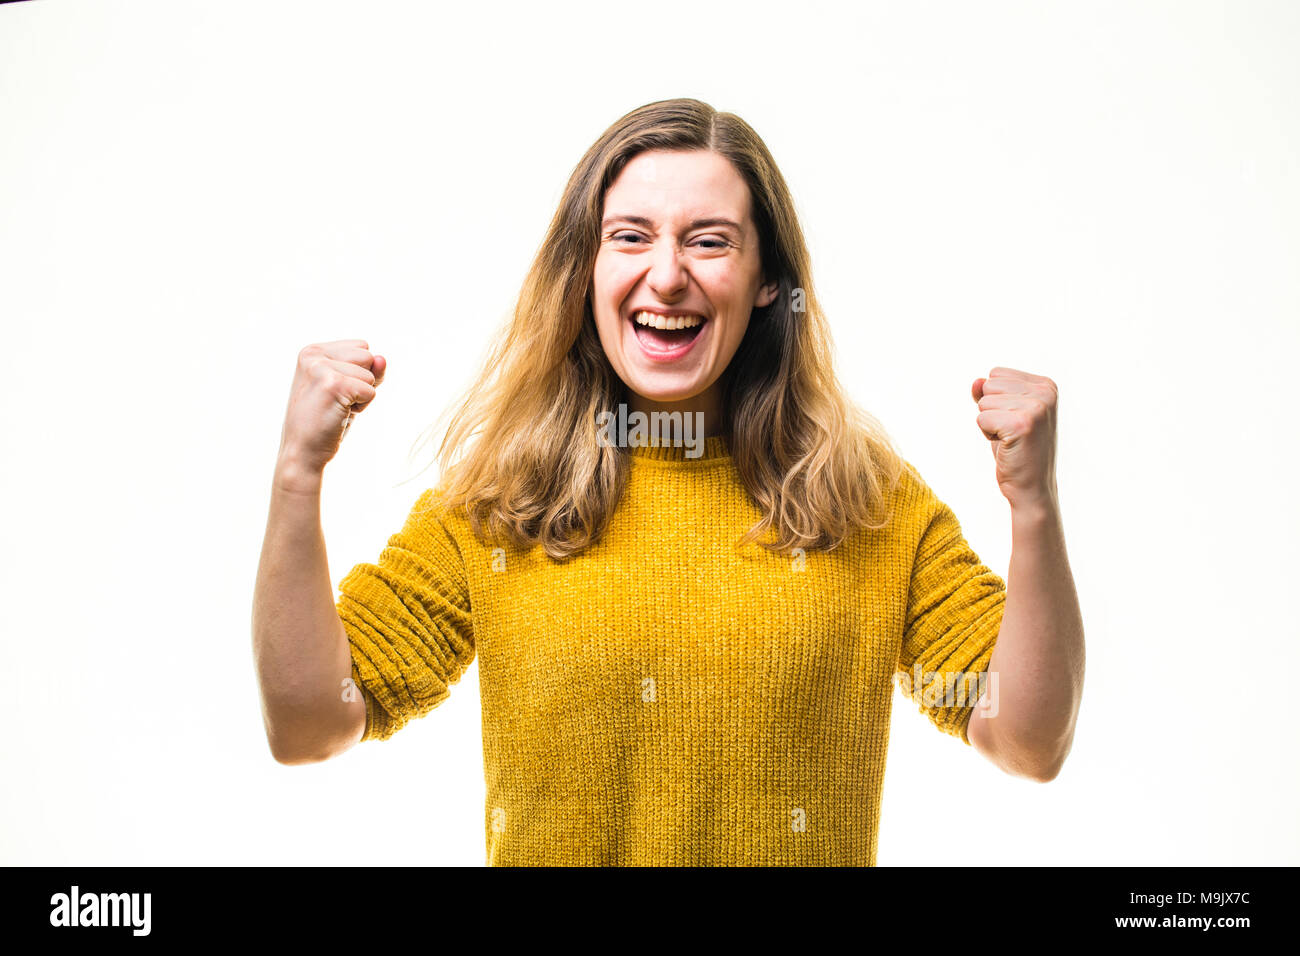 Celebrating success - A happy smiling positive enthusiastic  young Caucasian woman girl , pumping her fists in exuberance, full of passion and committment  - UK - Stock Image